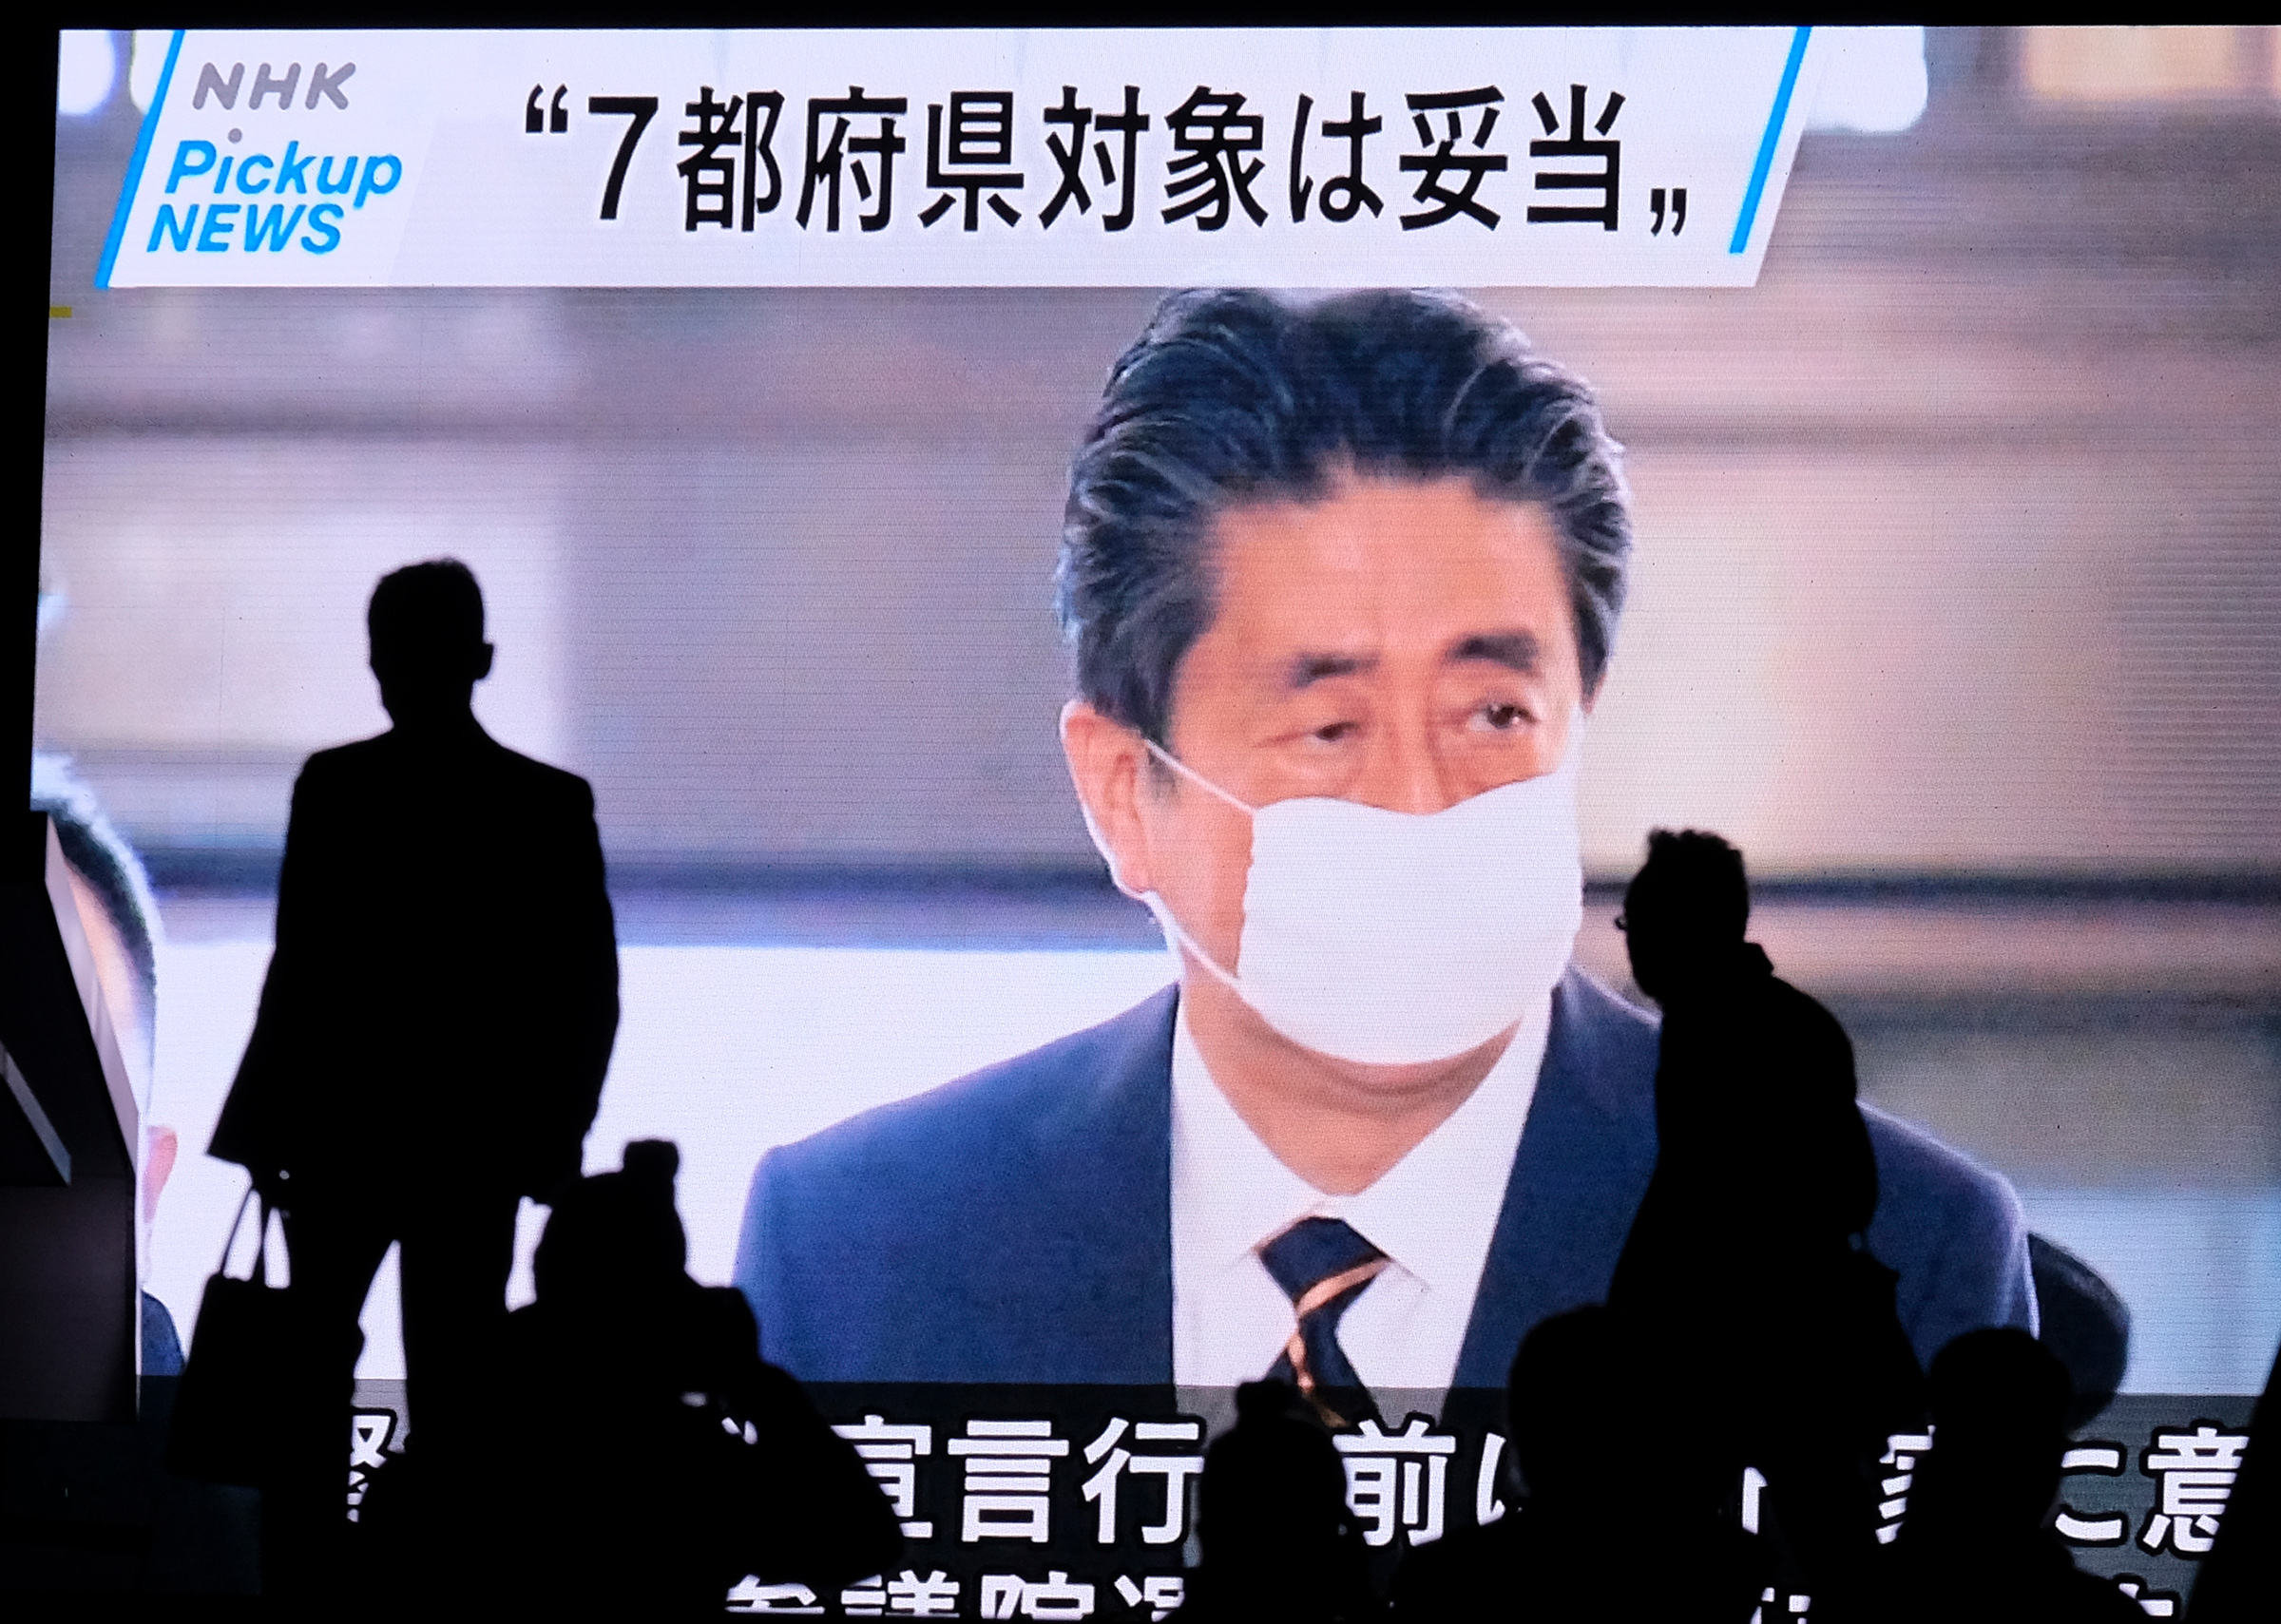 A screen displays news footage of Japan's Prime Minister Shinzo Abe at parliament in Tokyo on April 7